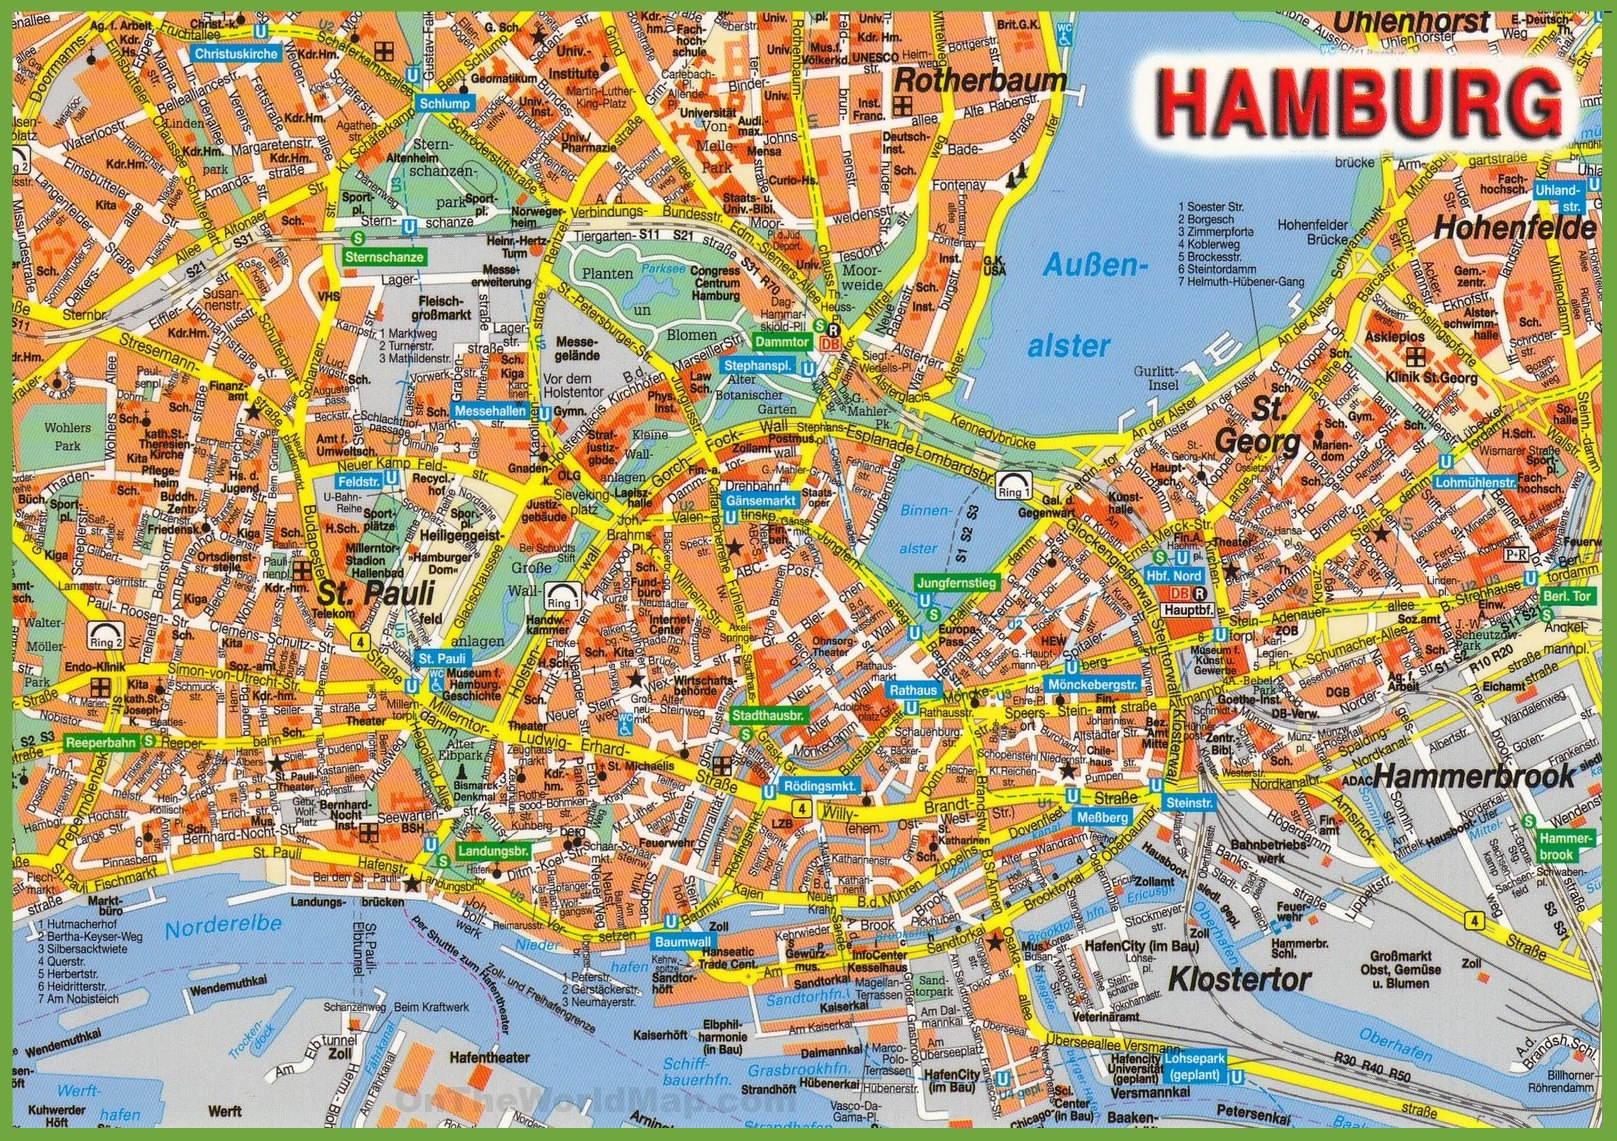 Hamburg tourist attractions map – Munich Tourist Attractions Map